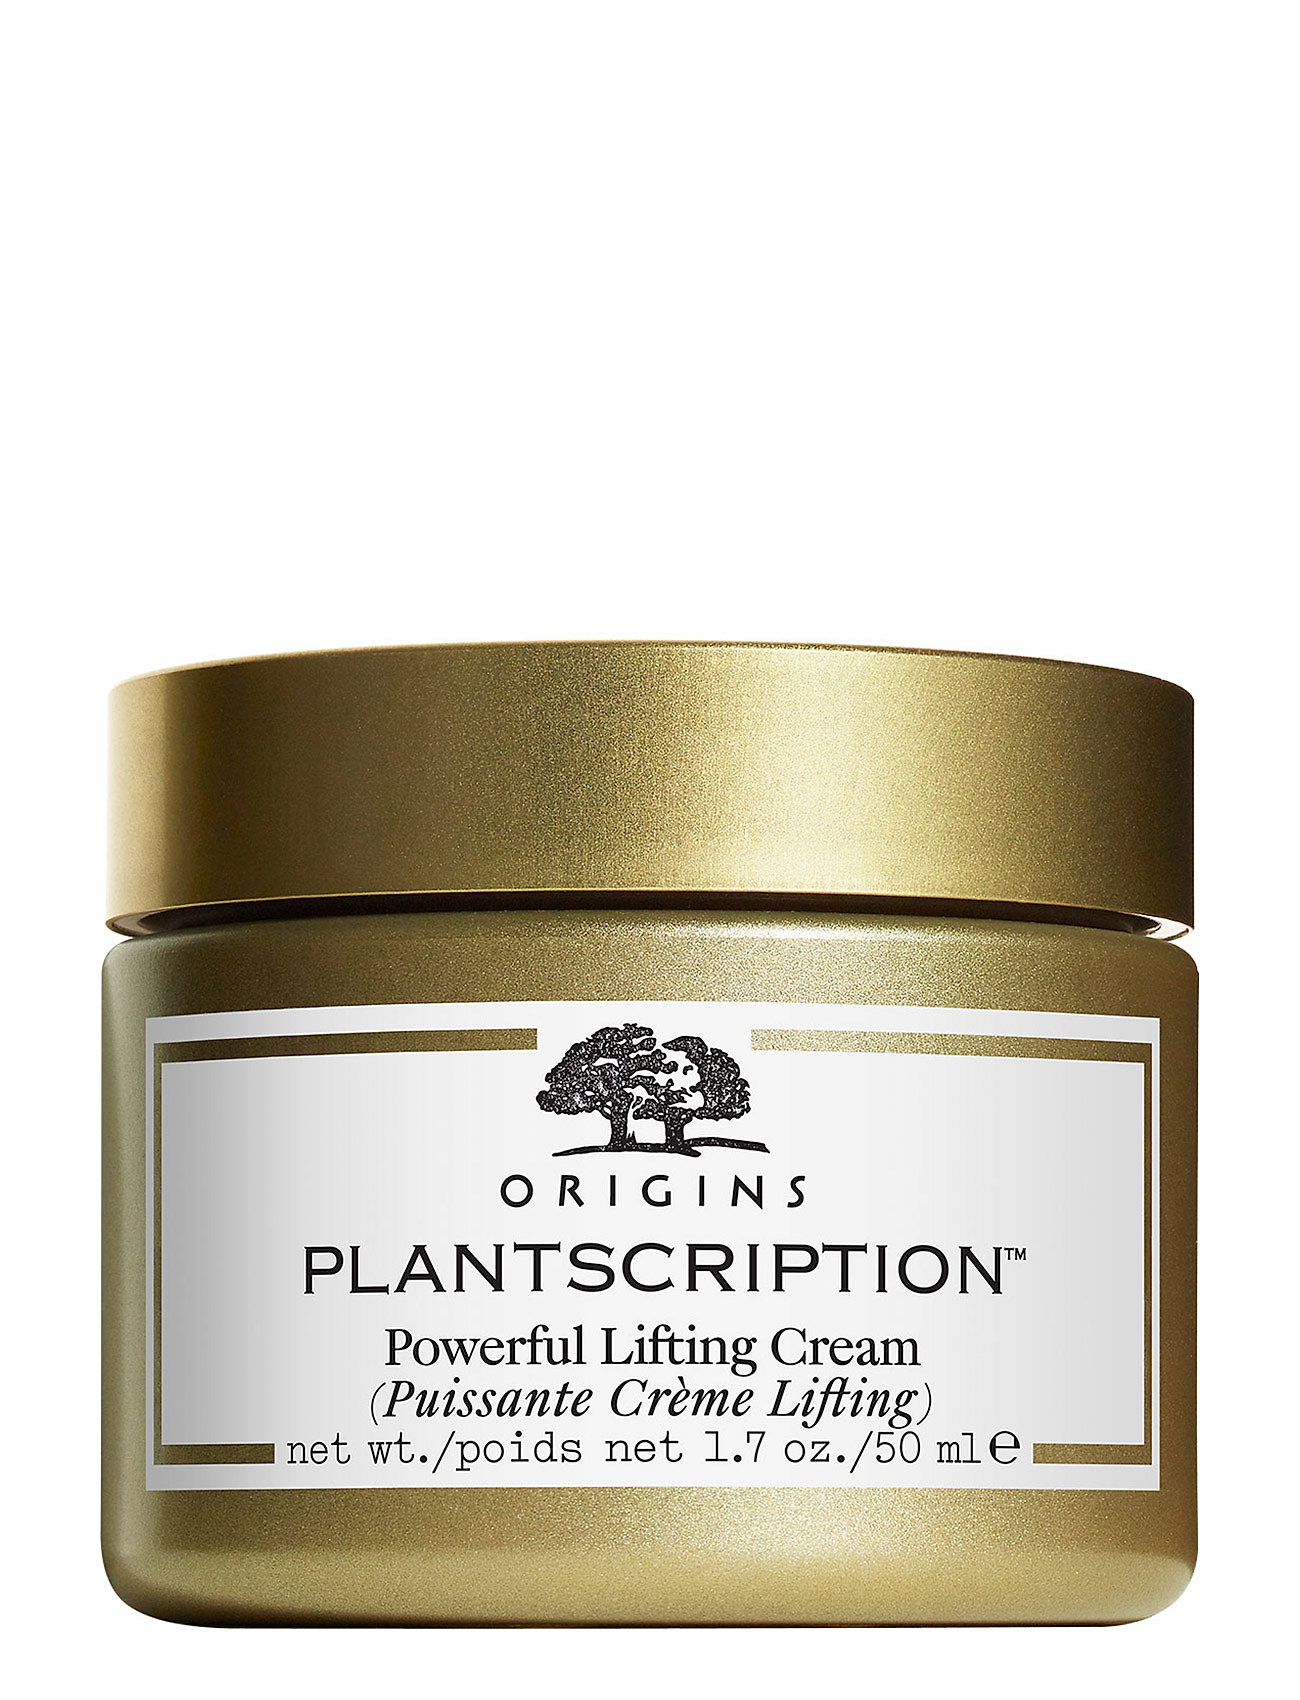 origins – Plantscription powerful lifting cream på boozt.com dk